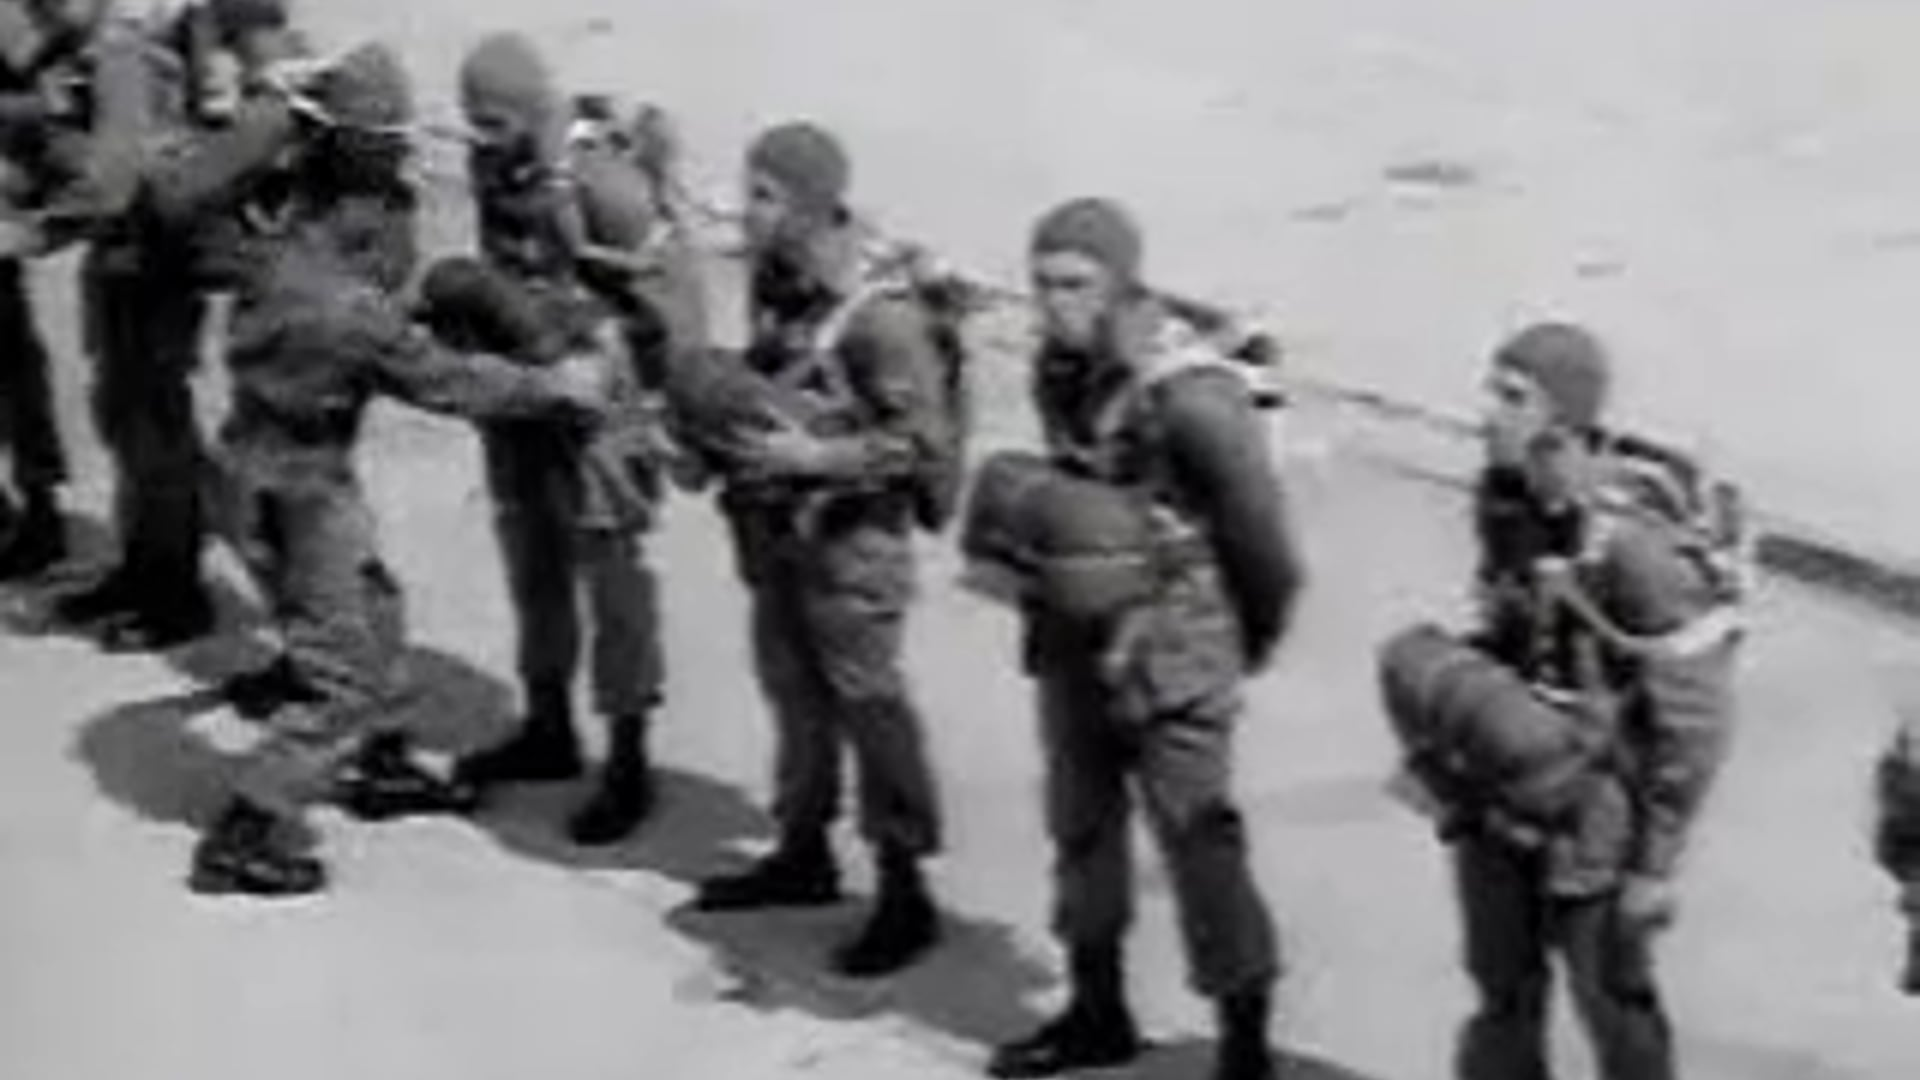 Band of Brothers (documentary)